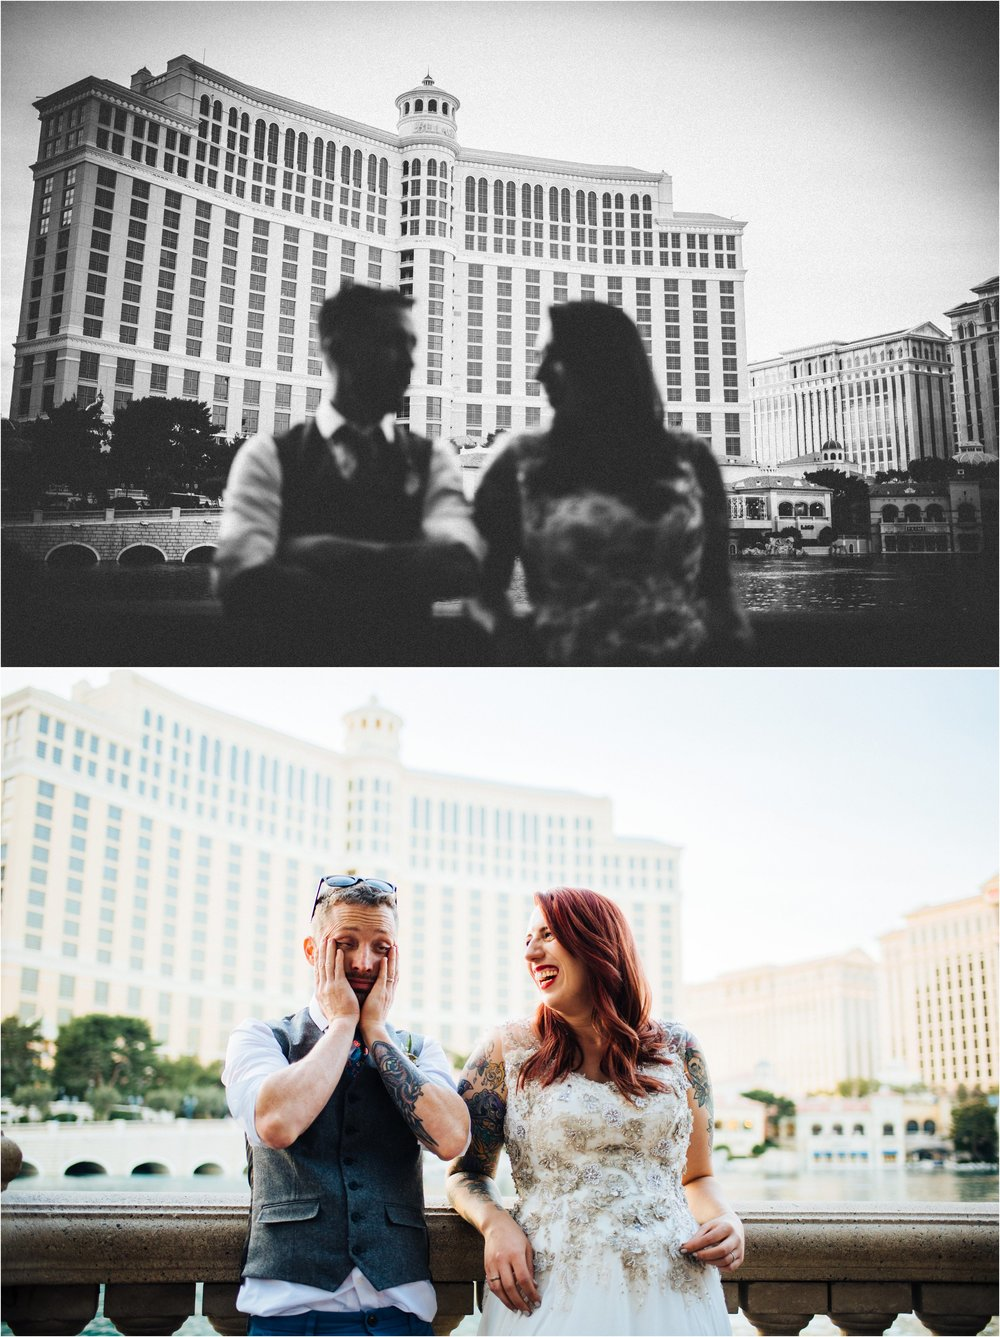 Vegas elopement destination wedding photographer_0154.jpg